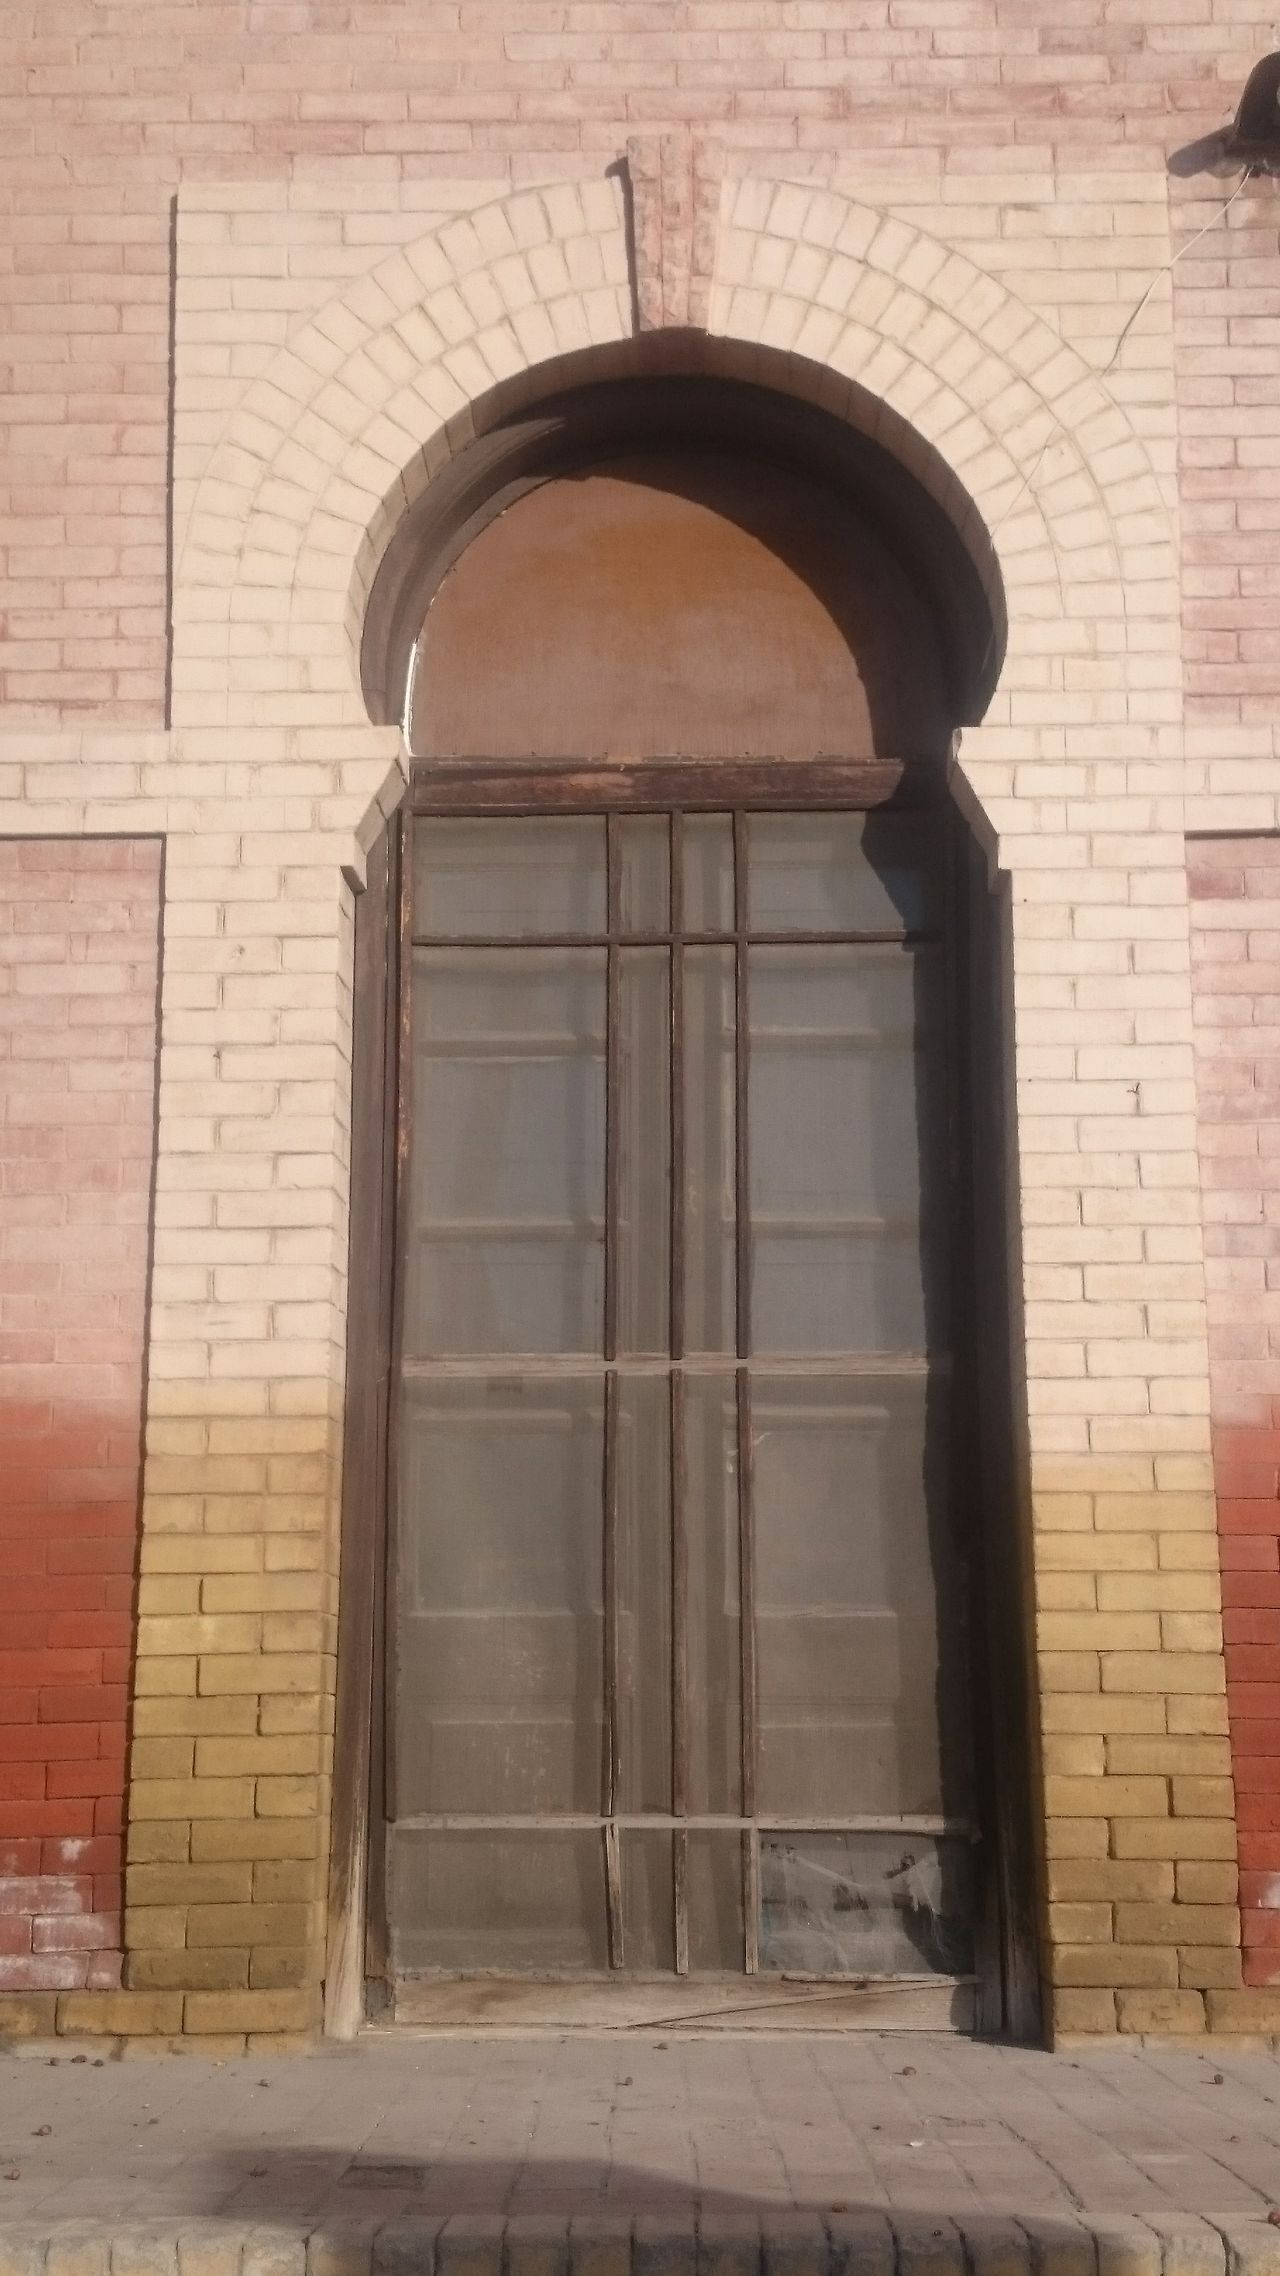 Architecture Building Exterior Arch Built Structure Door No People Entrance Outdoors Day Arabic Architecture Arab Architecture In Mexico Bazaar San Pedro De Las Colonias, Coah. Comarca Lagunera Architecture